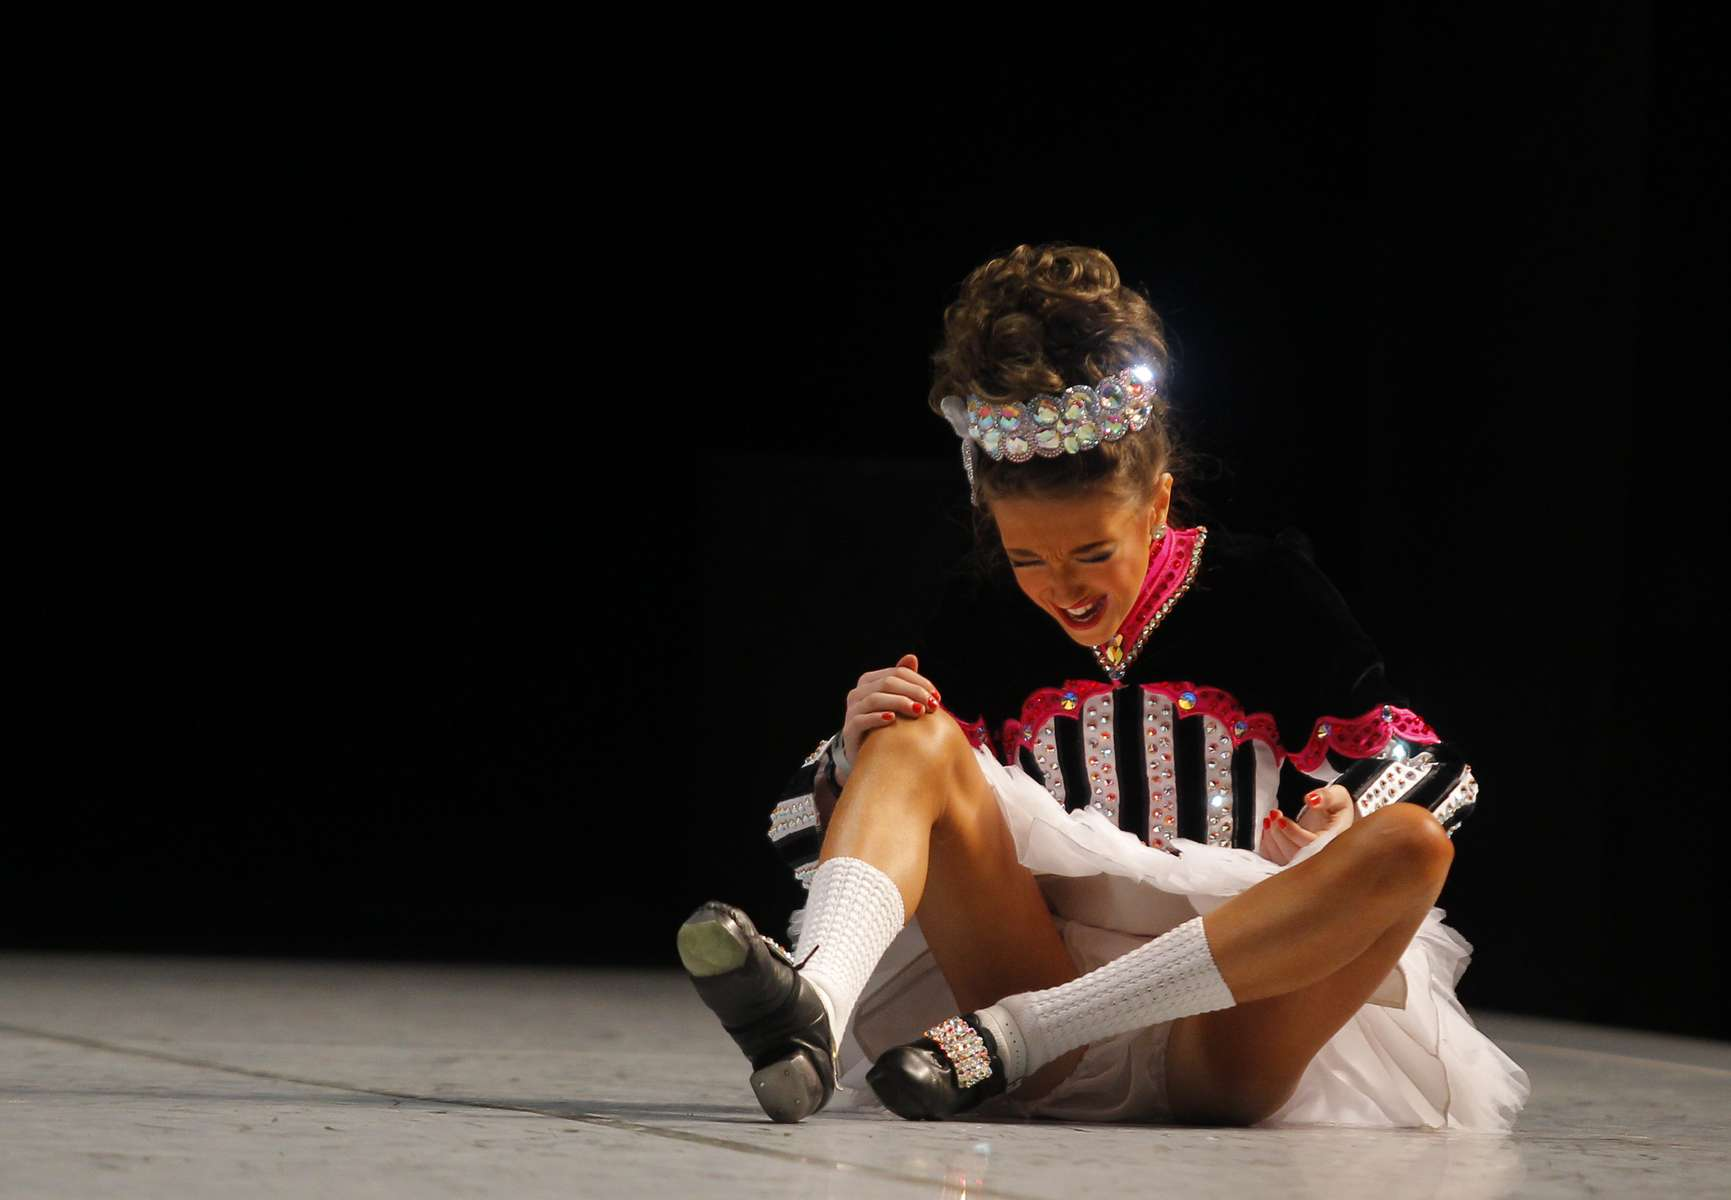 A competitor reacts after falling at the World Irish Dancing Championships in Boston, Massachusetts March 24, 2013.